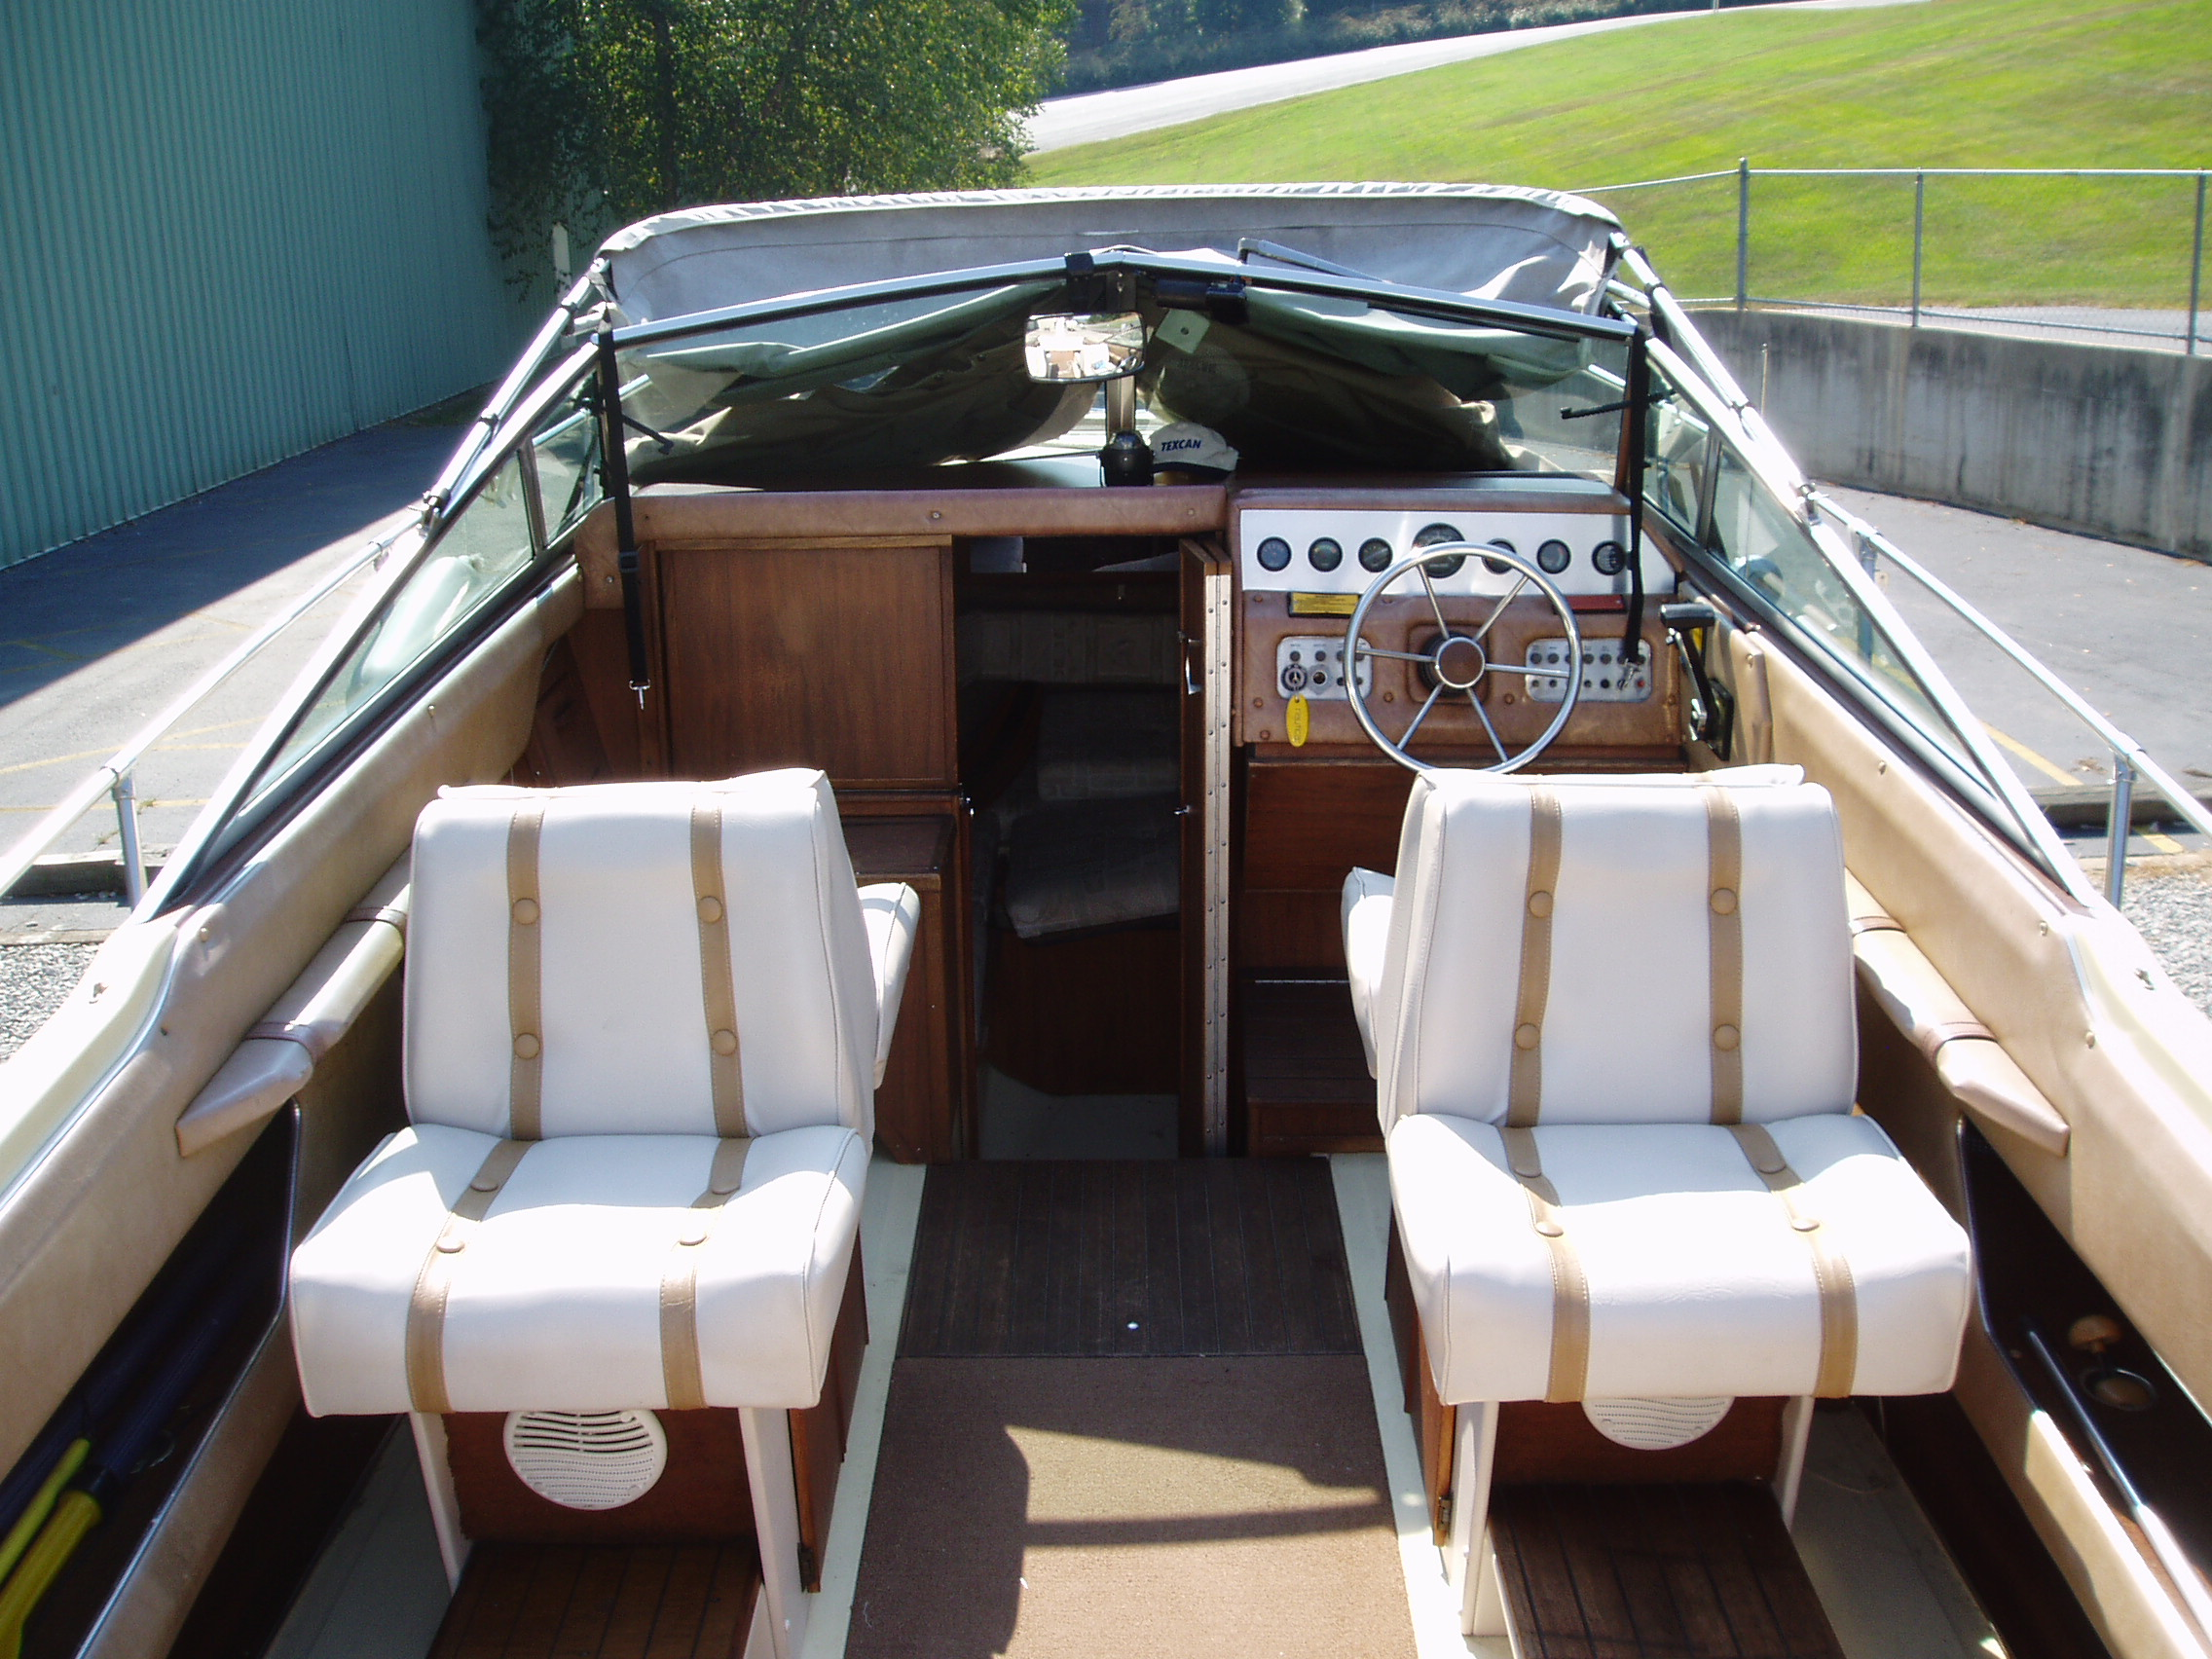 1982 Sea Ray 225 Weekender 22 Cuddy Cabin Used Excellent